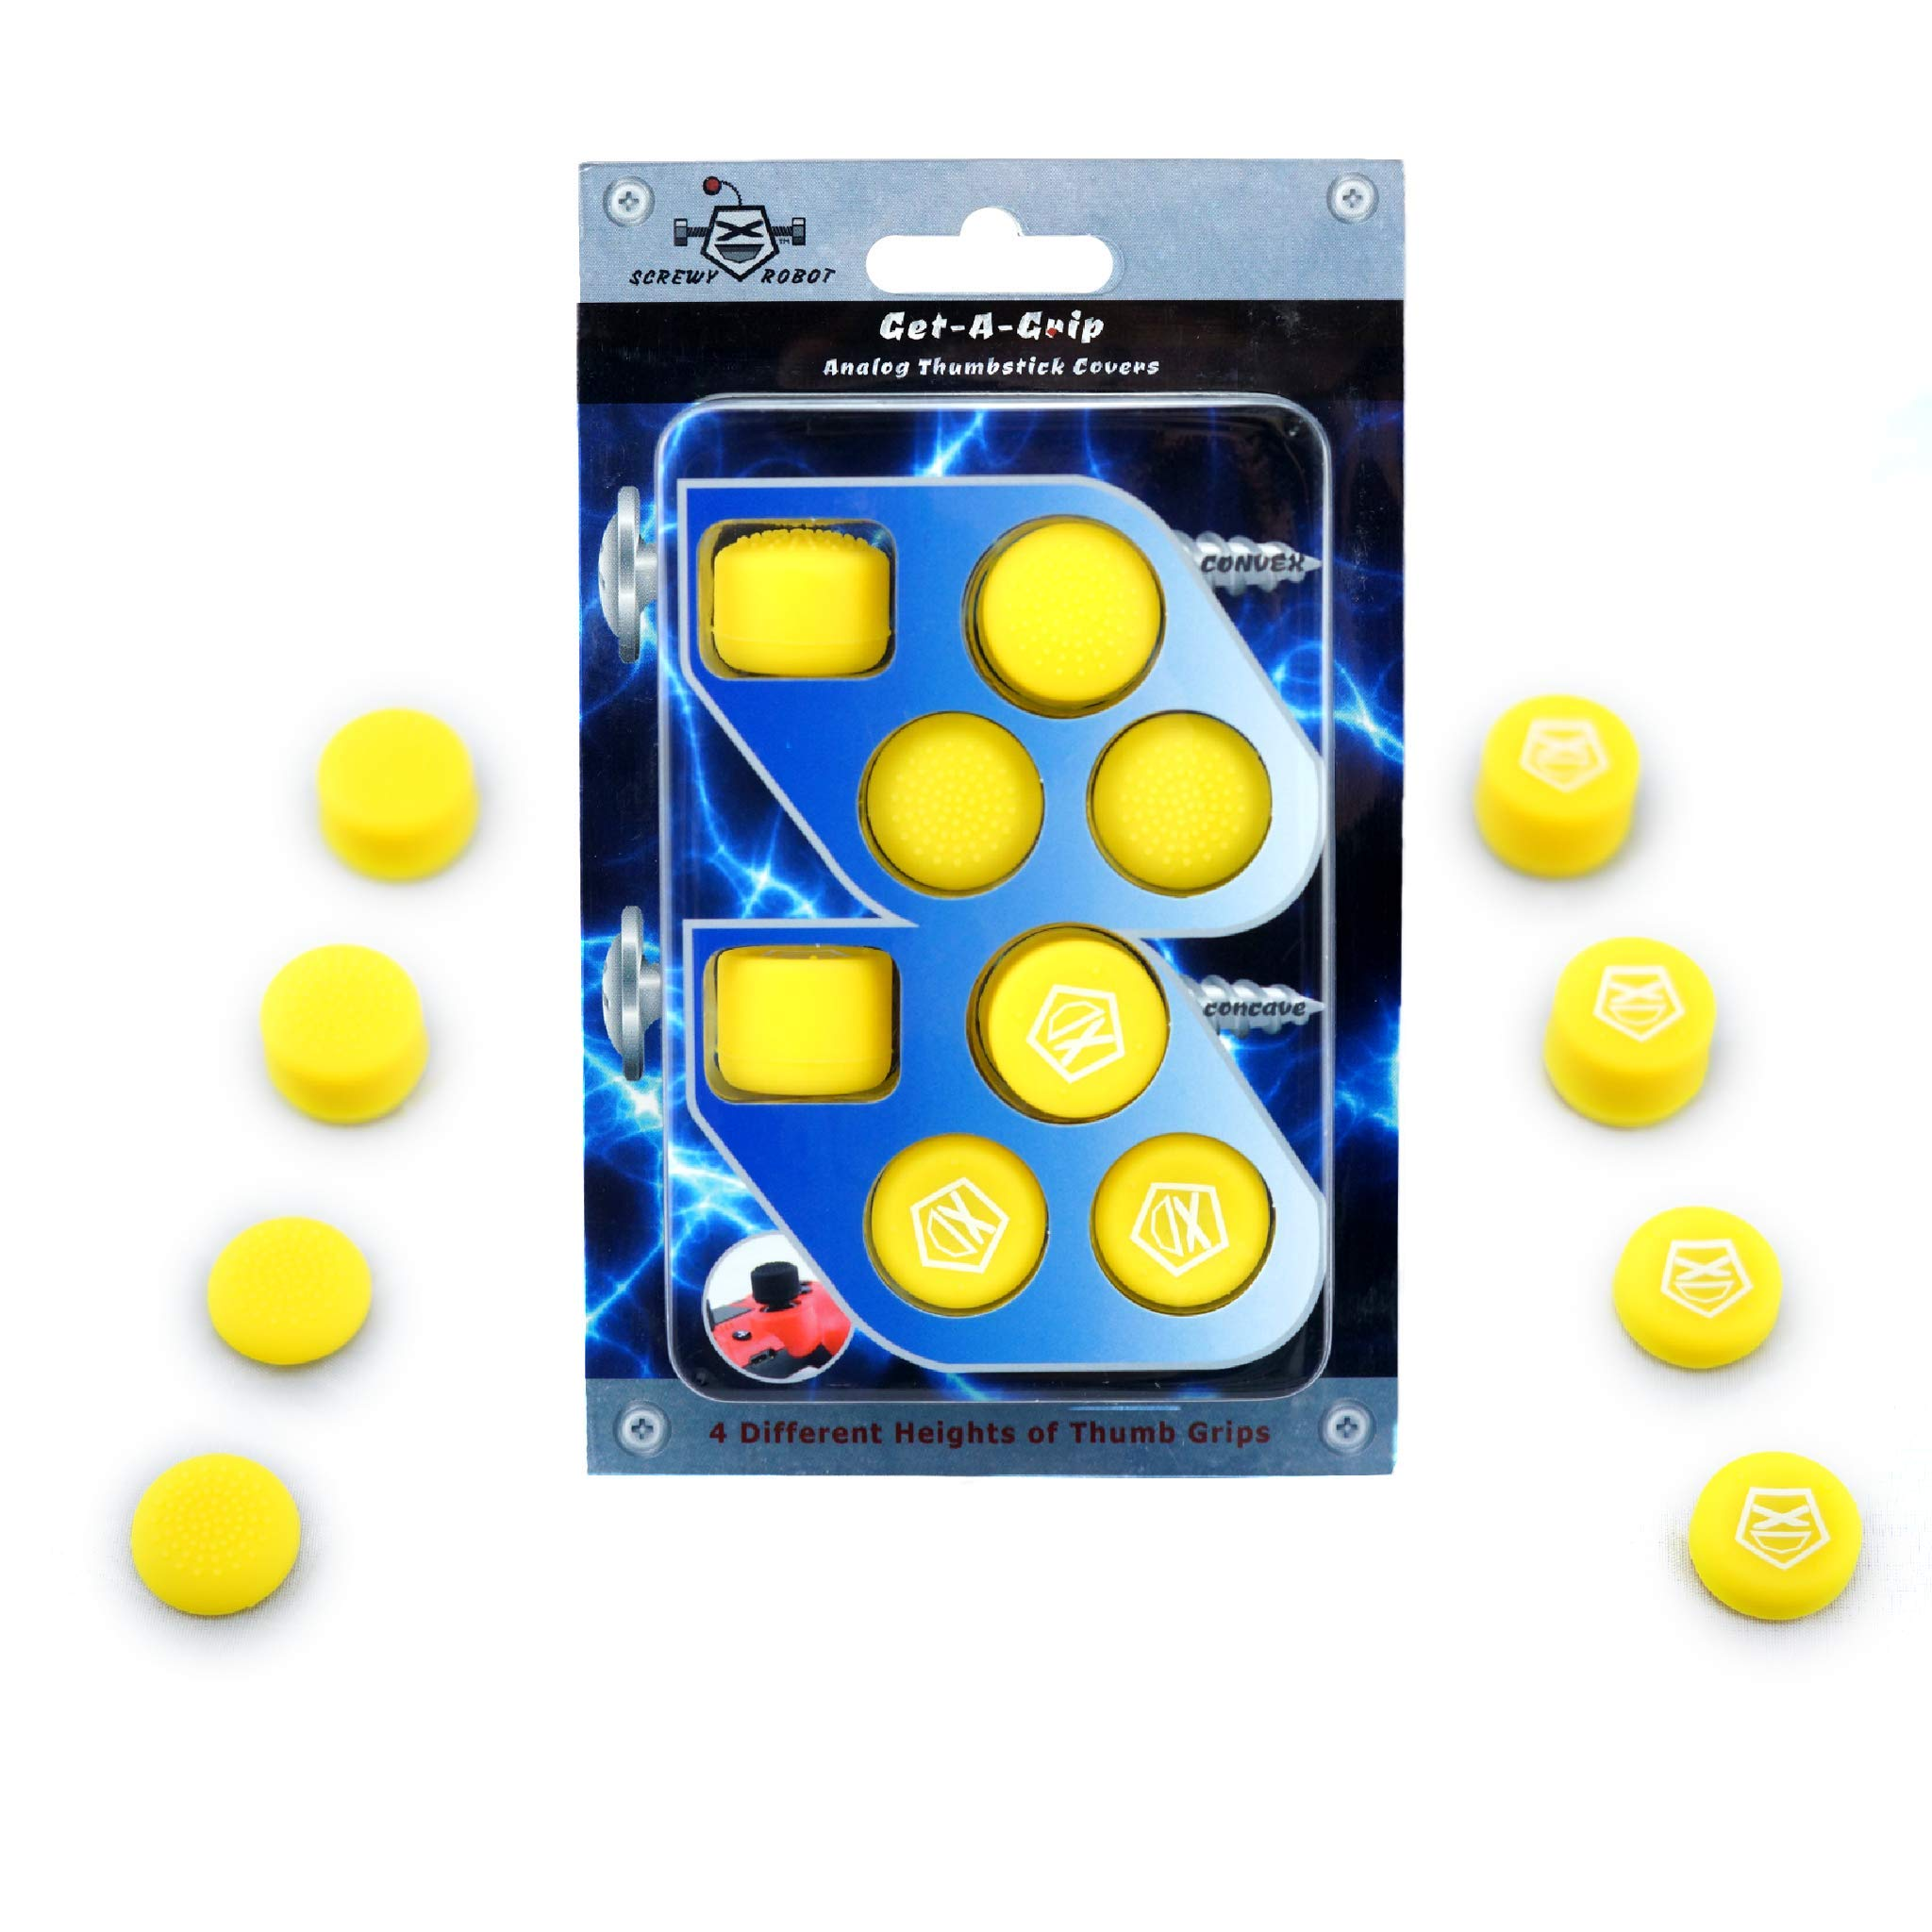 Get-A-Grip Analog Thumbstick Grip Covers for PS4/PS3 by ScrewyRobot (Yellow) by ScrewyRobot